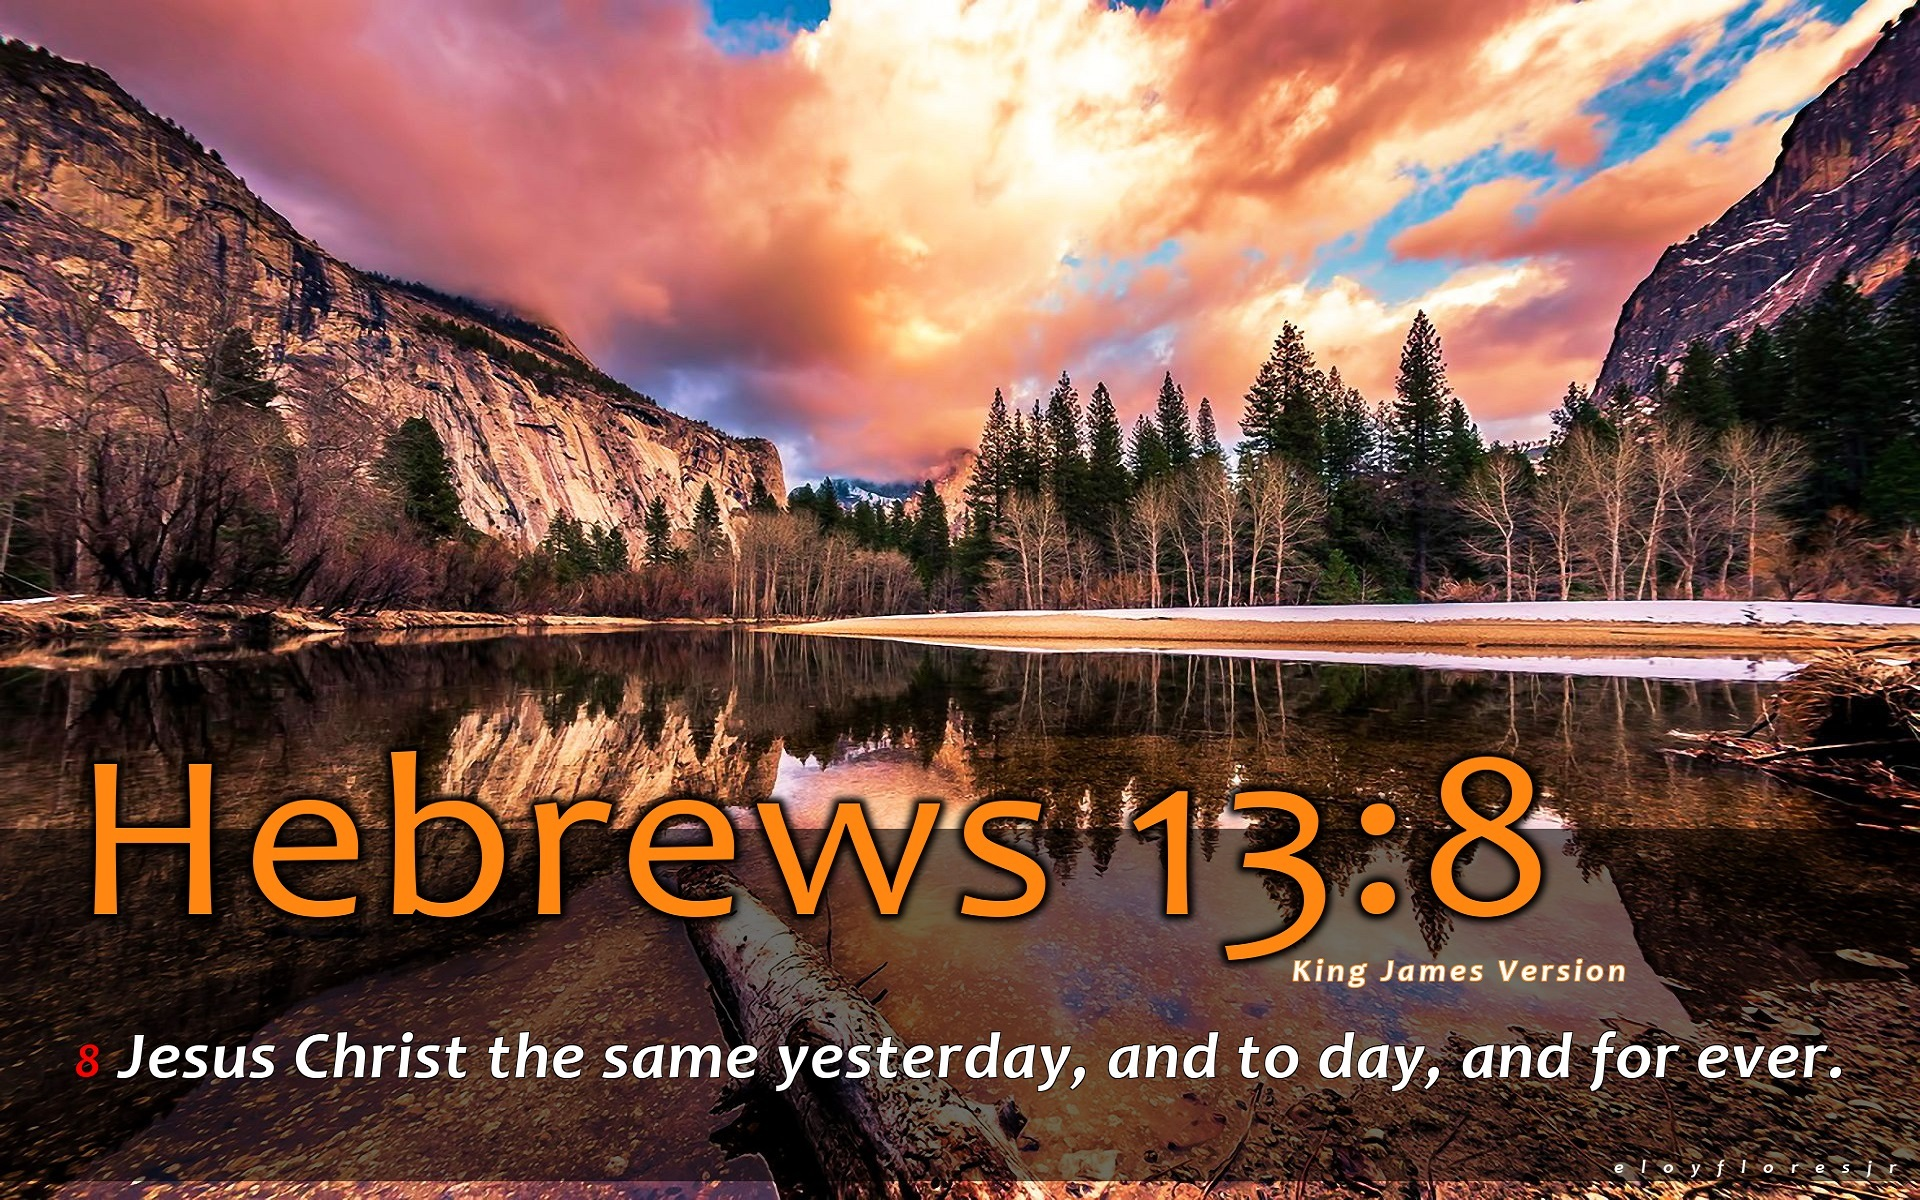 hebrews-13-8-religion-hd-wallpaper-1920x1200-2713